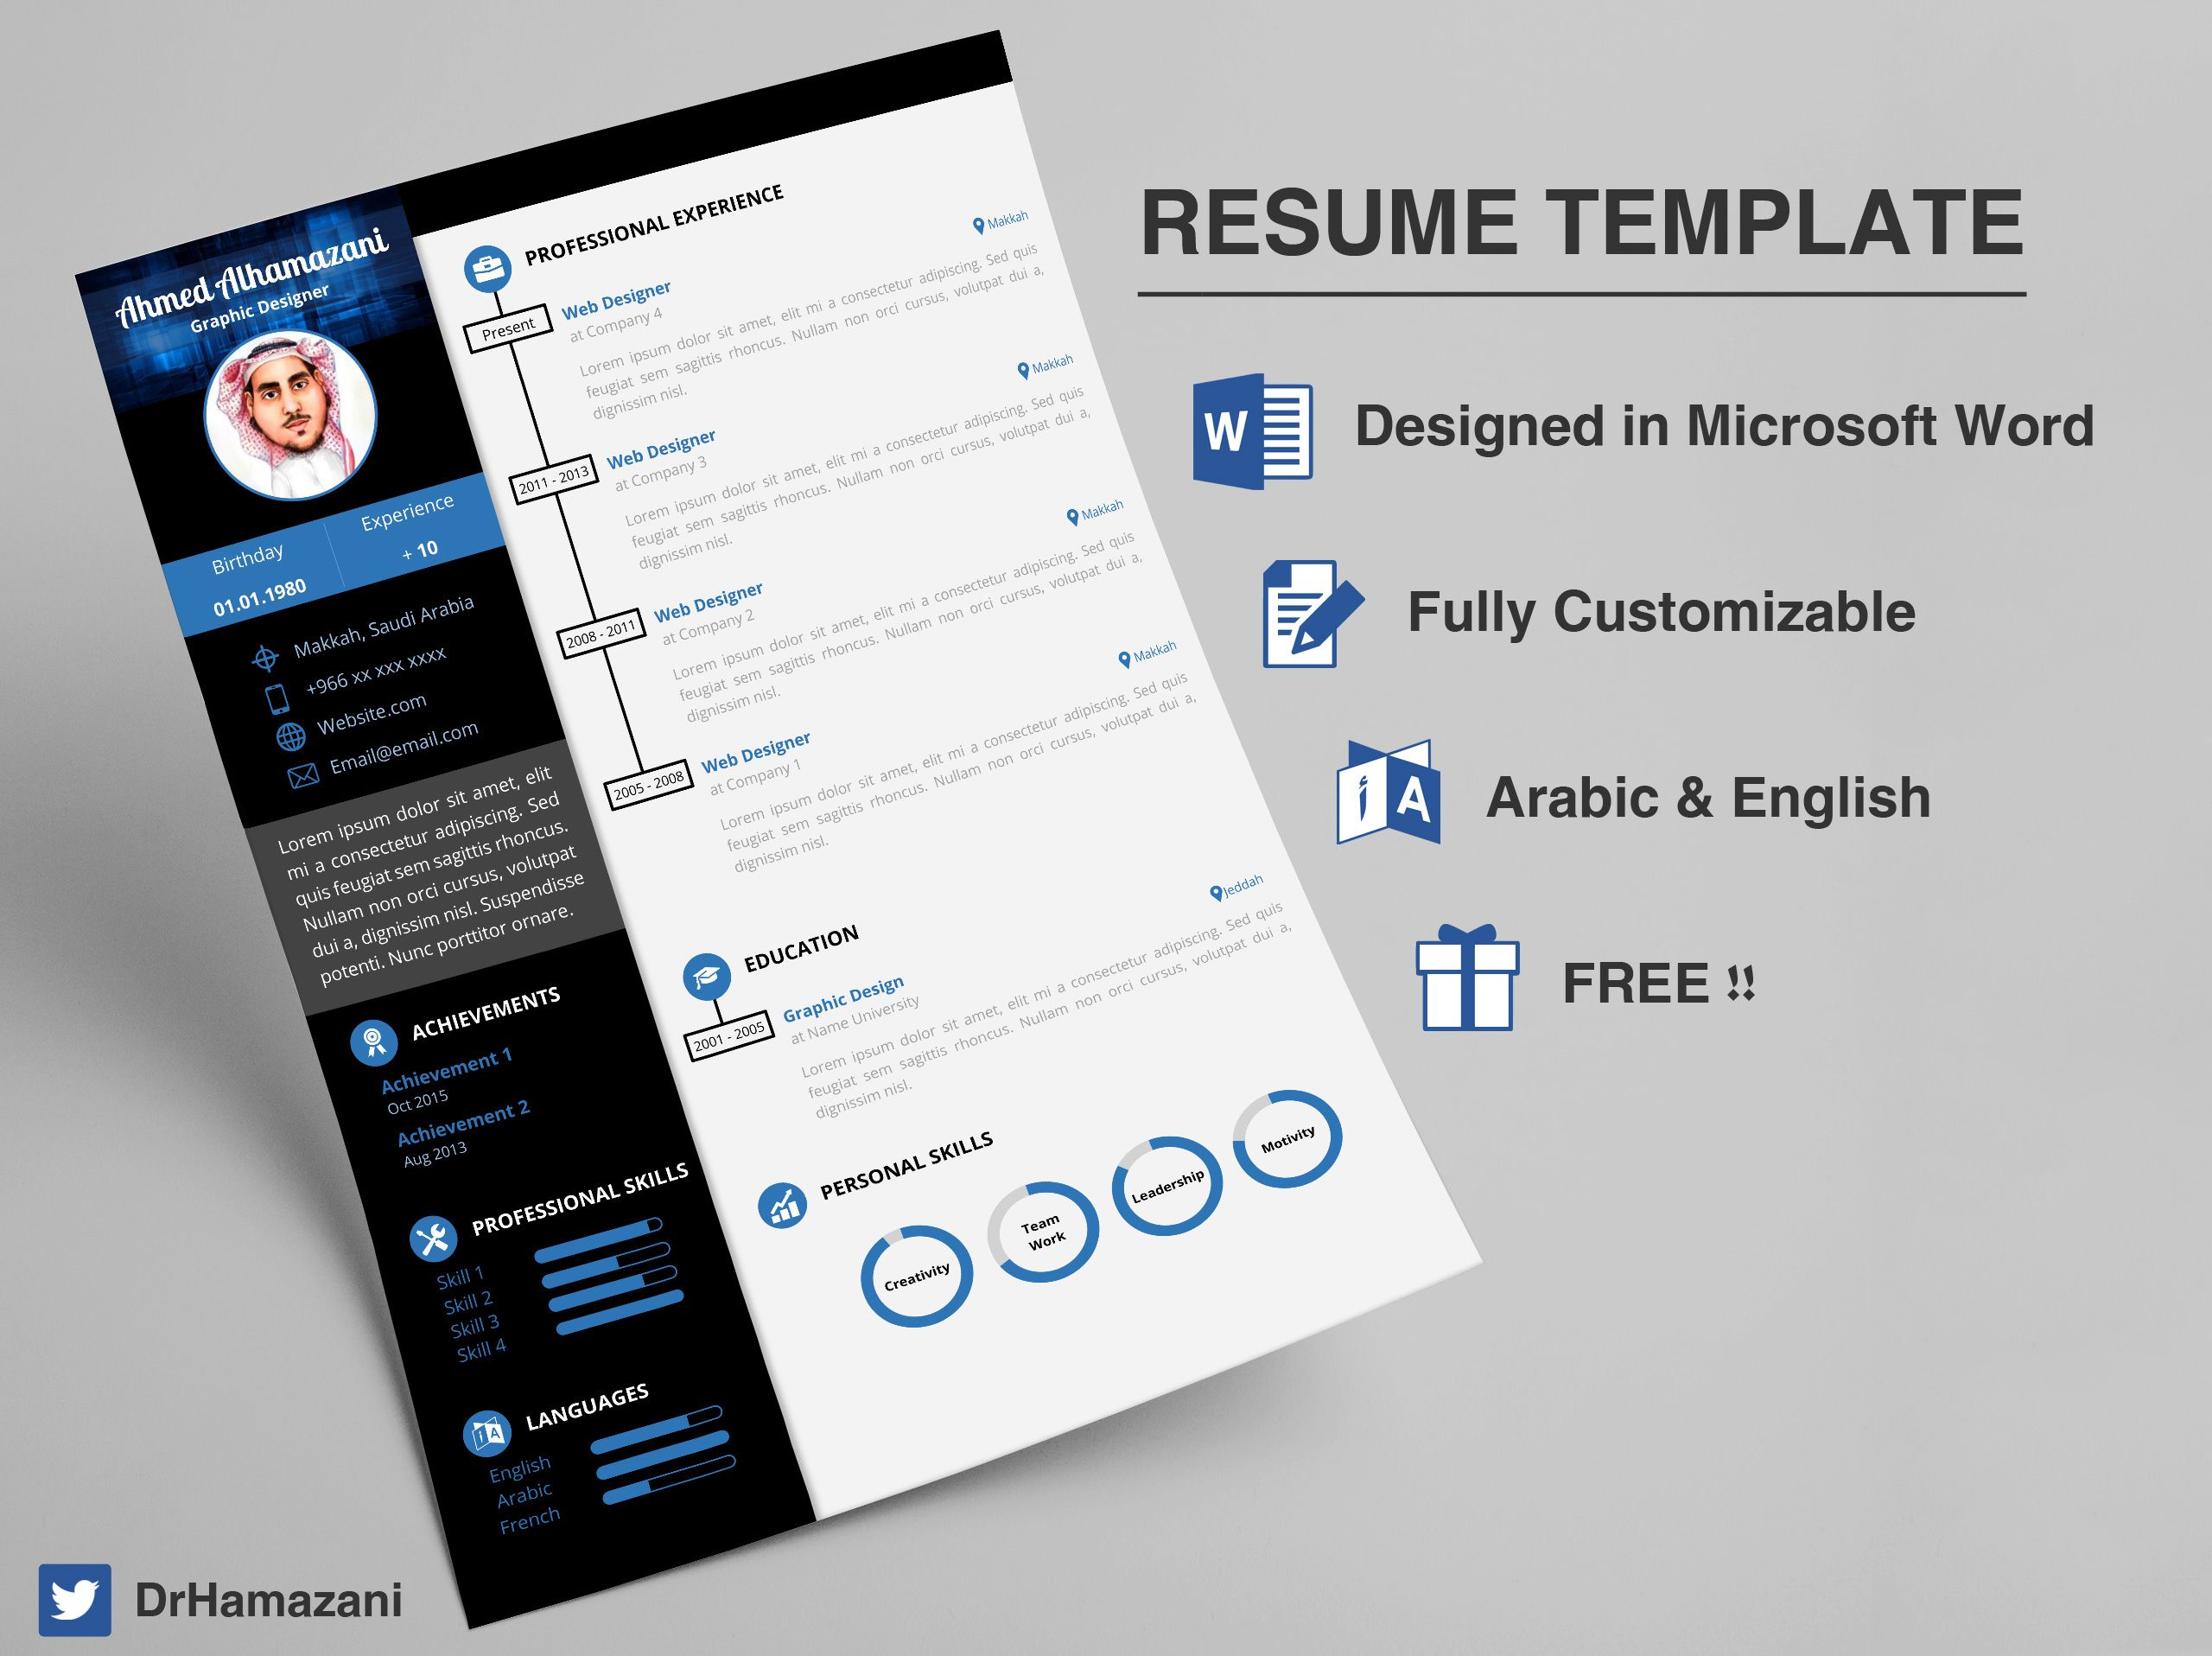 Free Resume Template In Docx And Doc Format Ready To Download